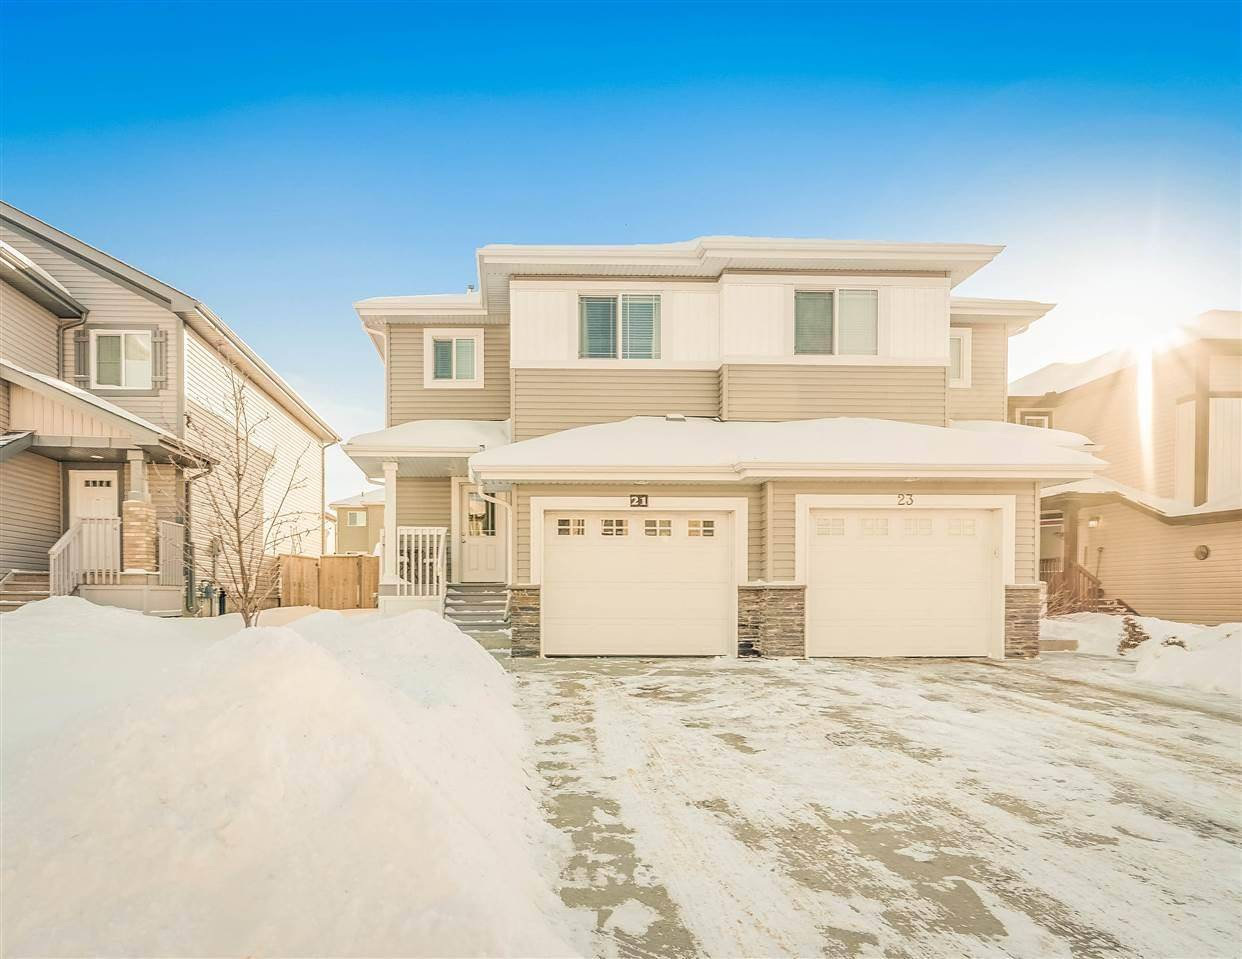 Townhouse for sale at 21 Springwood Wy Spruce Grove Alberta - MLS: E4188396